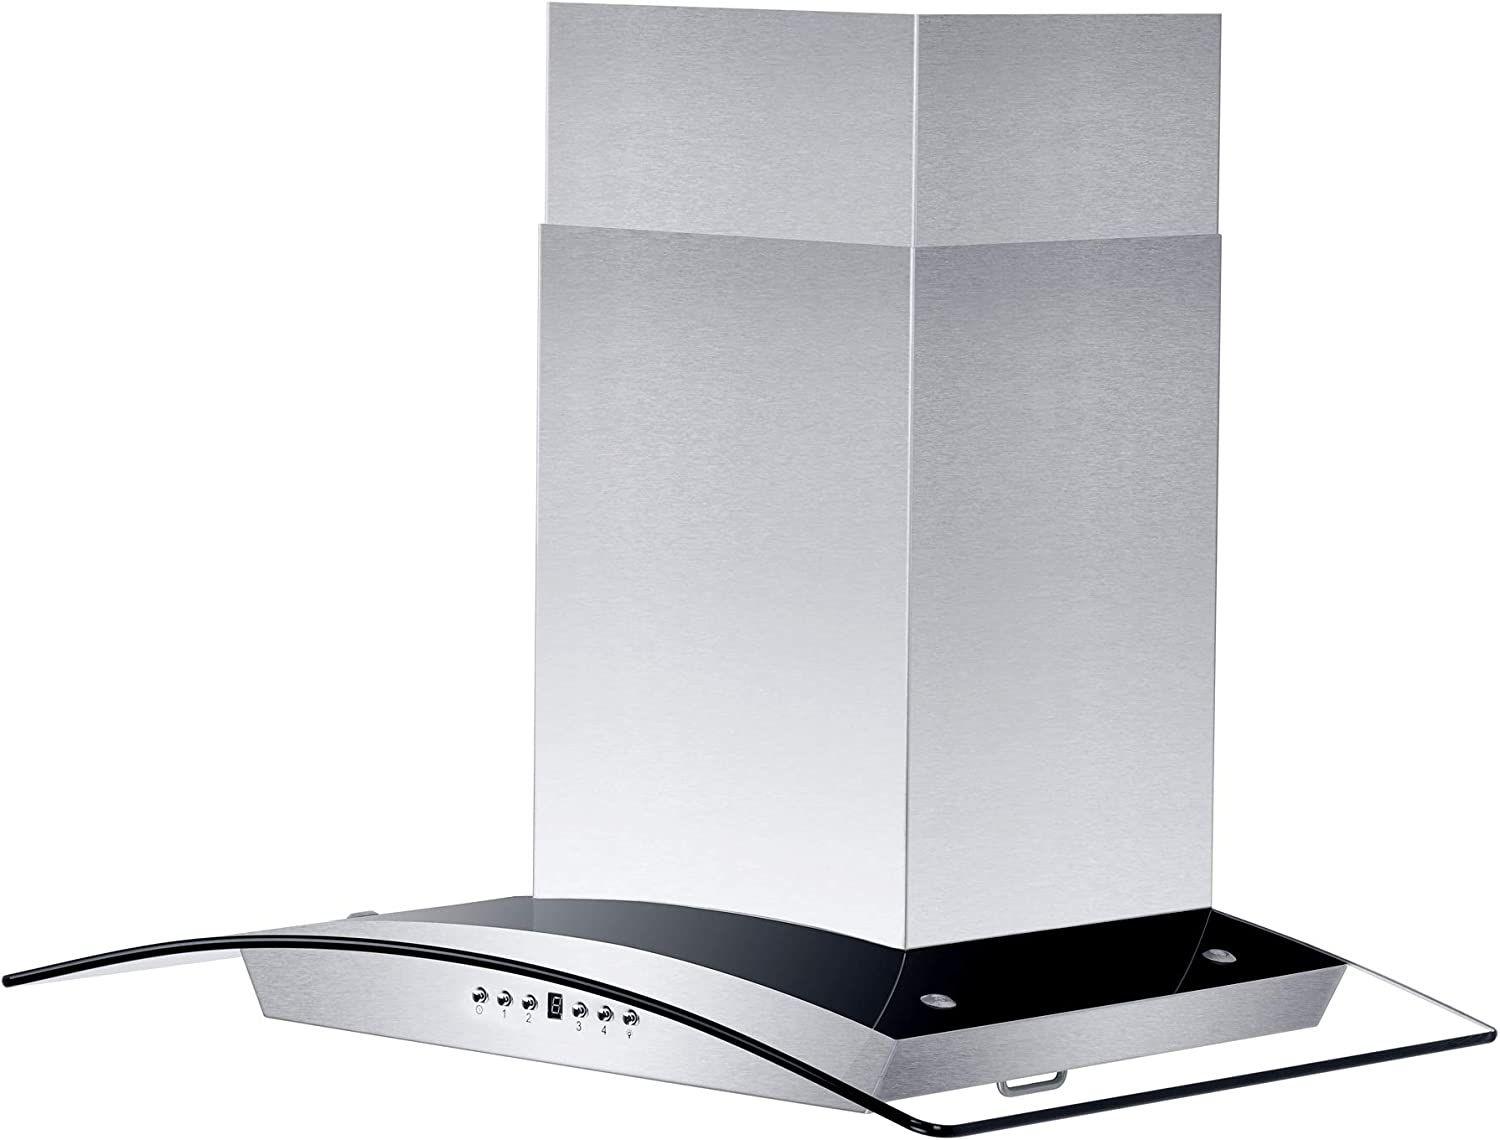 "30"" Stainless Steel Wall Mount Range Hood w/Glass & Baffle Filters"